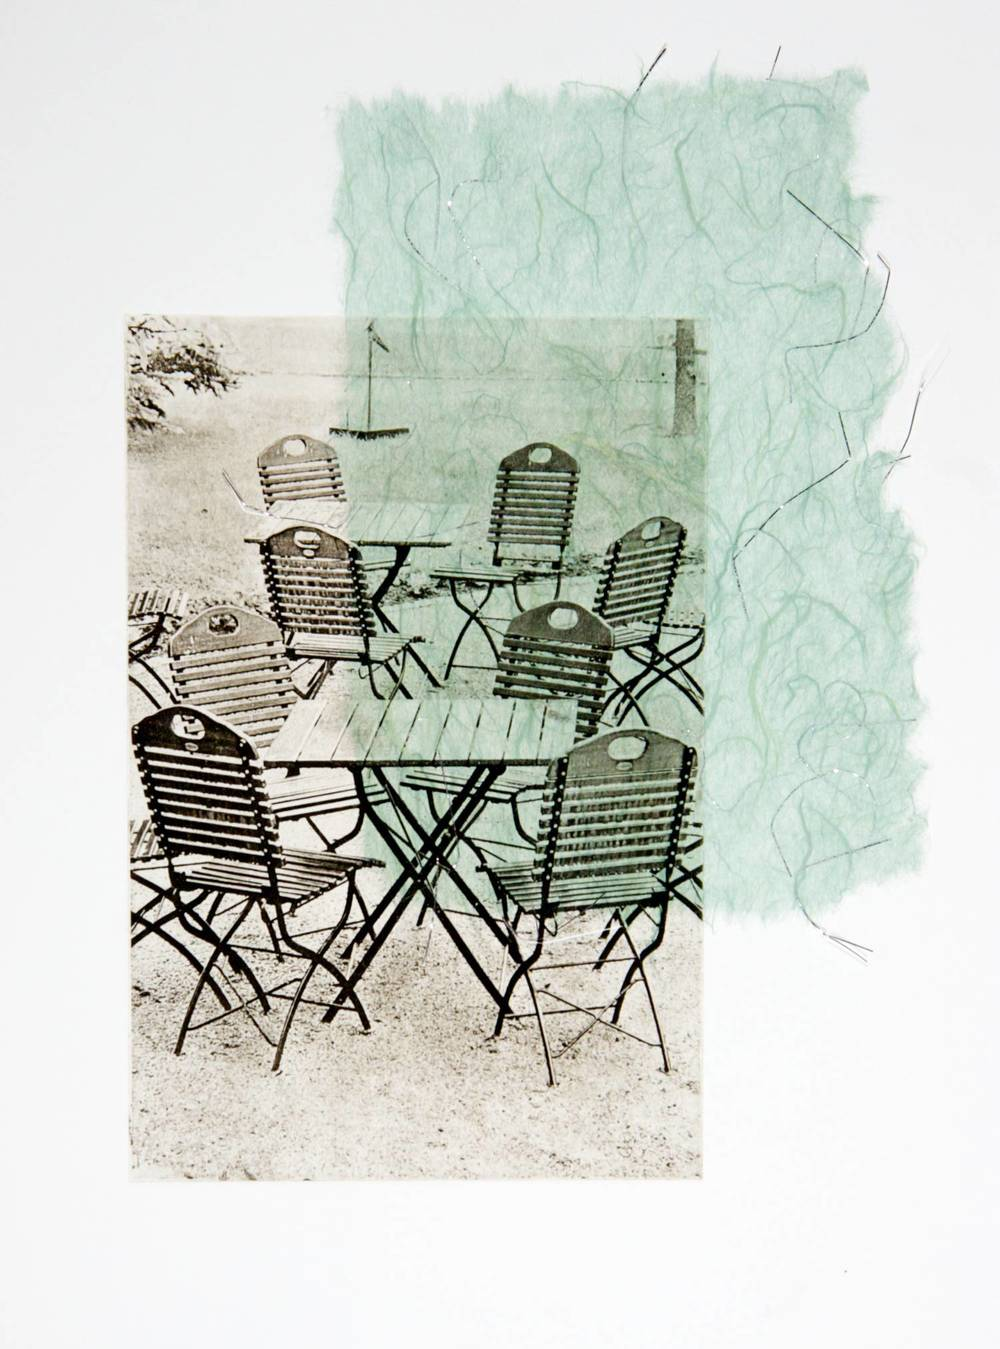 Chairs chine-collé (silver thread)